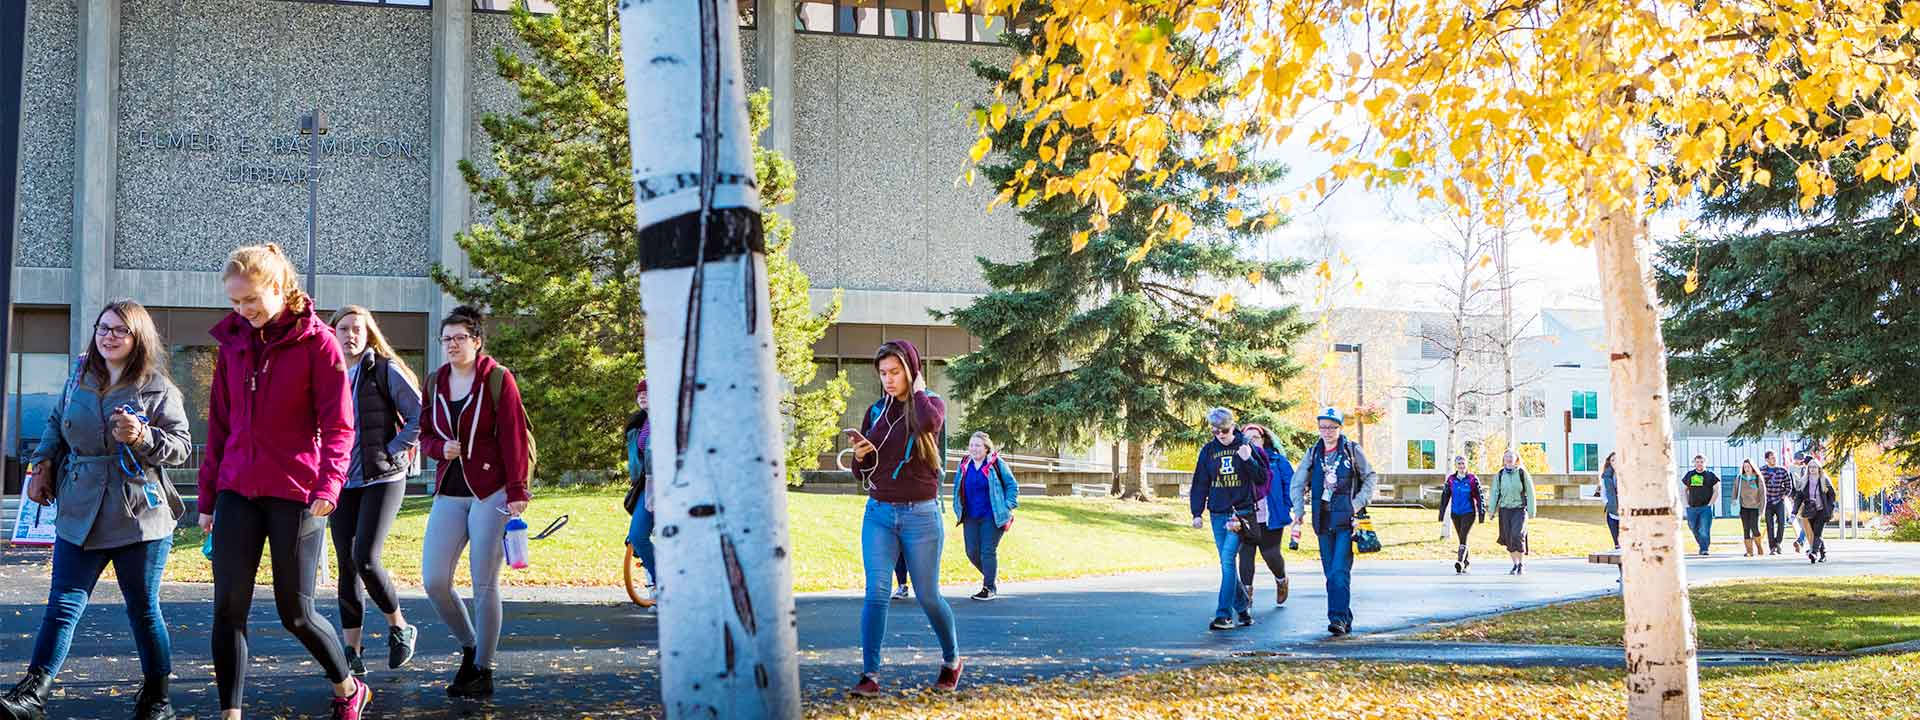 Check out our open house series for opportunities to tour campus, meet faculty, staff and students, and get a glimpse of UAF life.